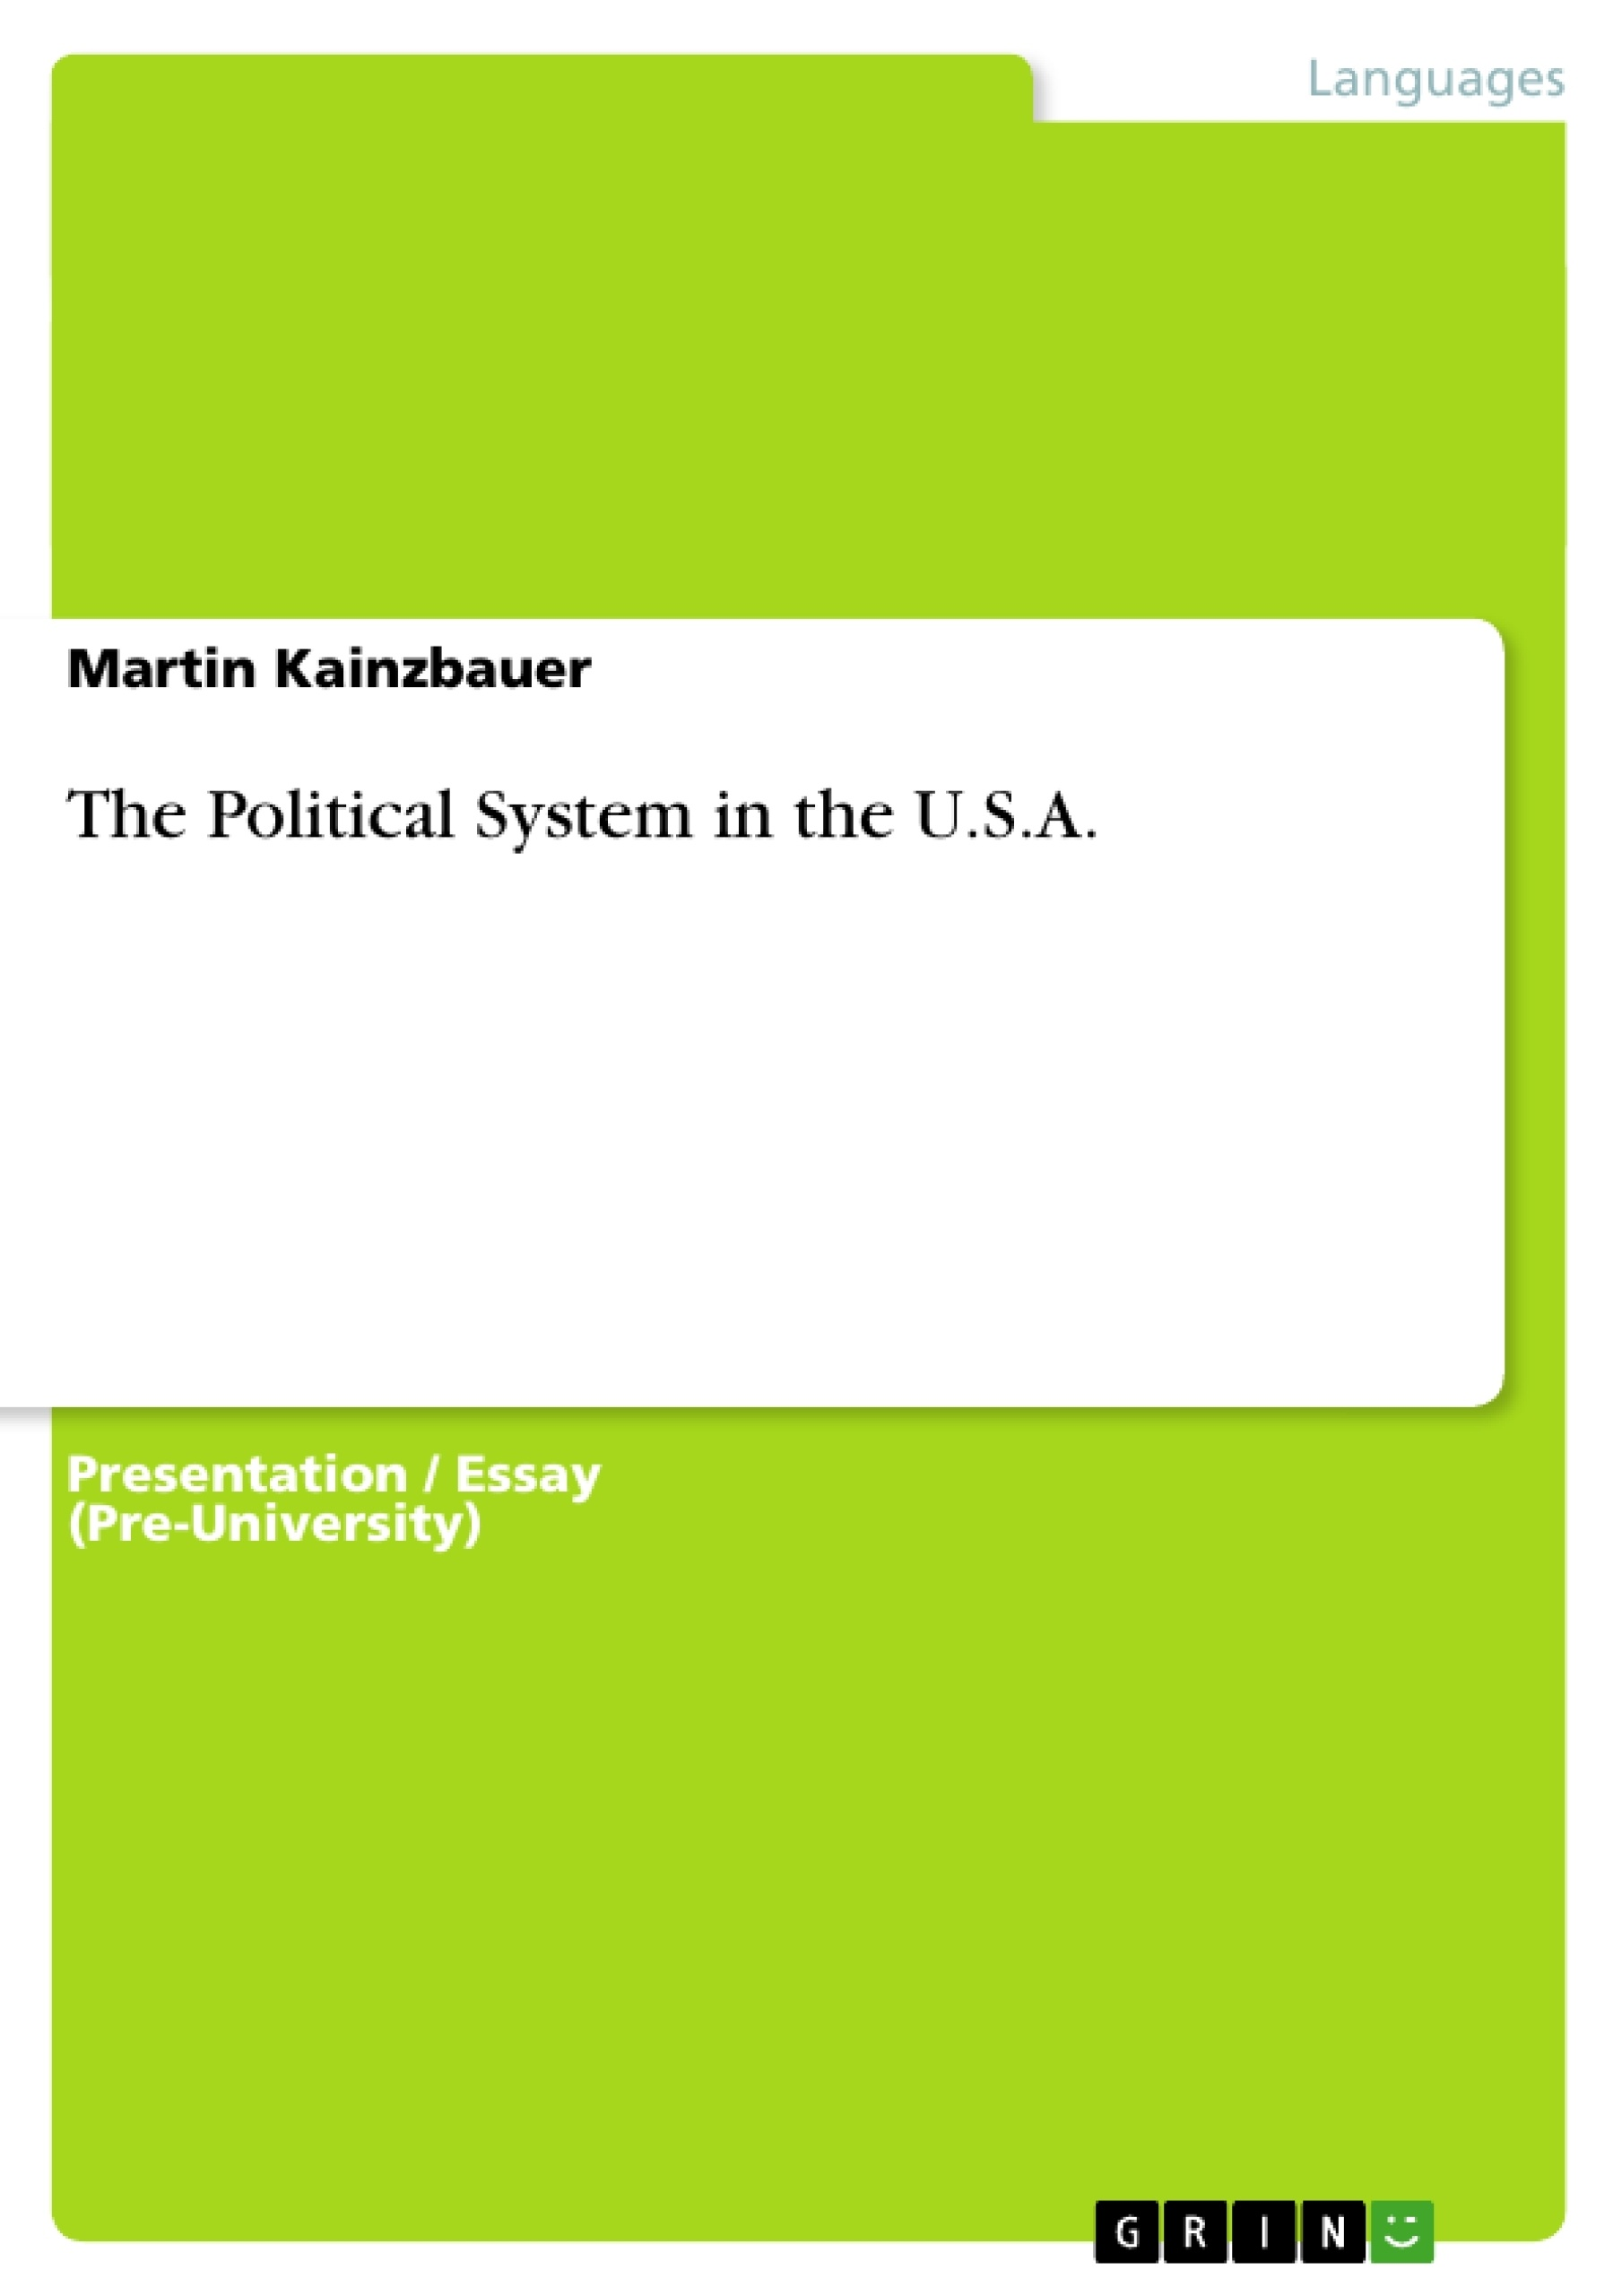 Title: The Political System in the U.S.A.